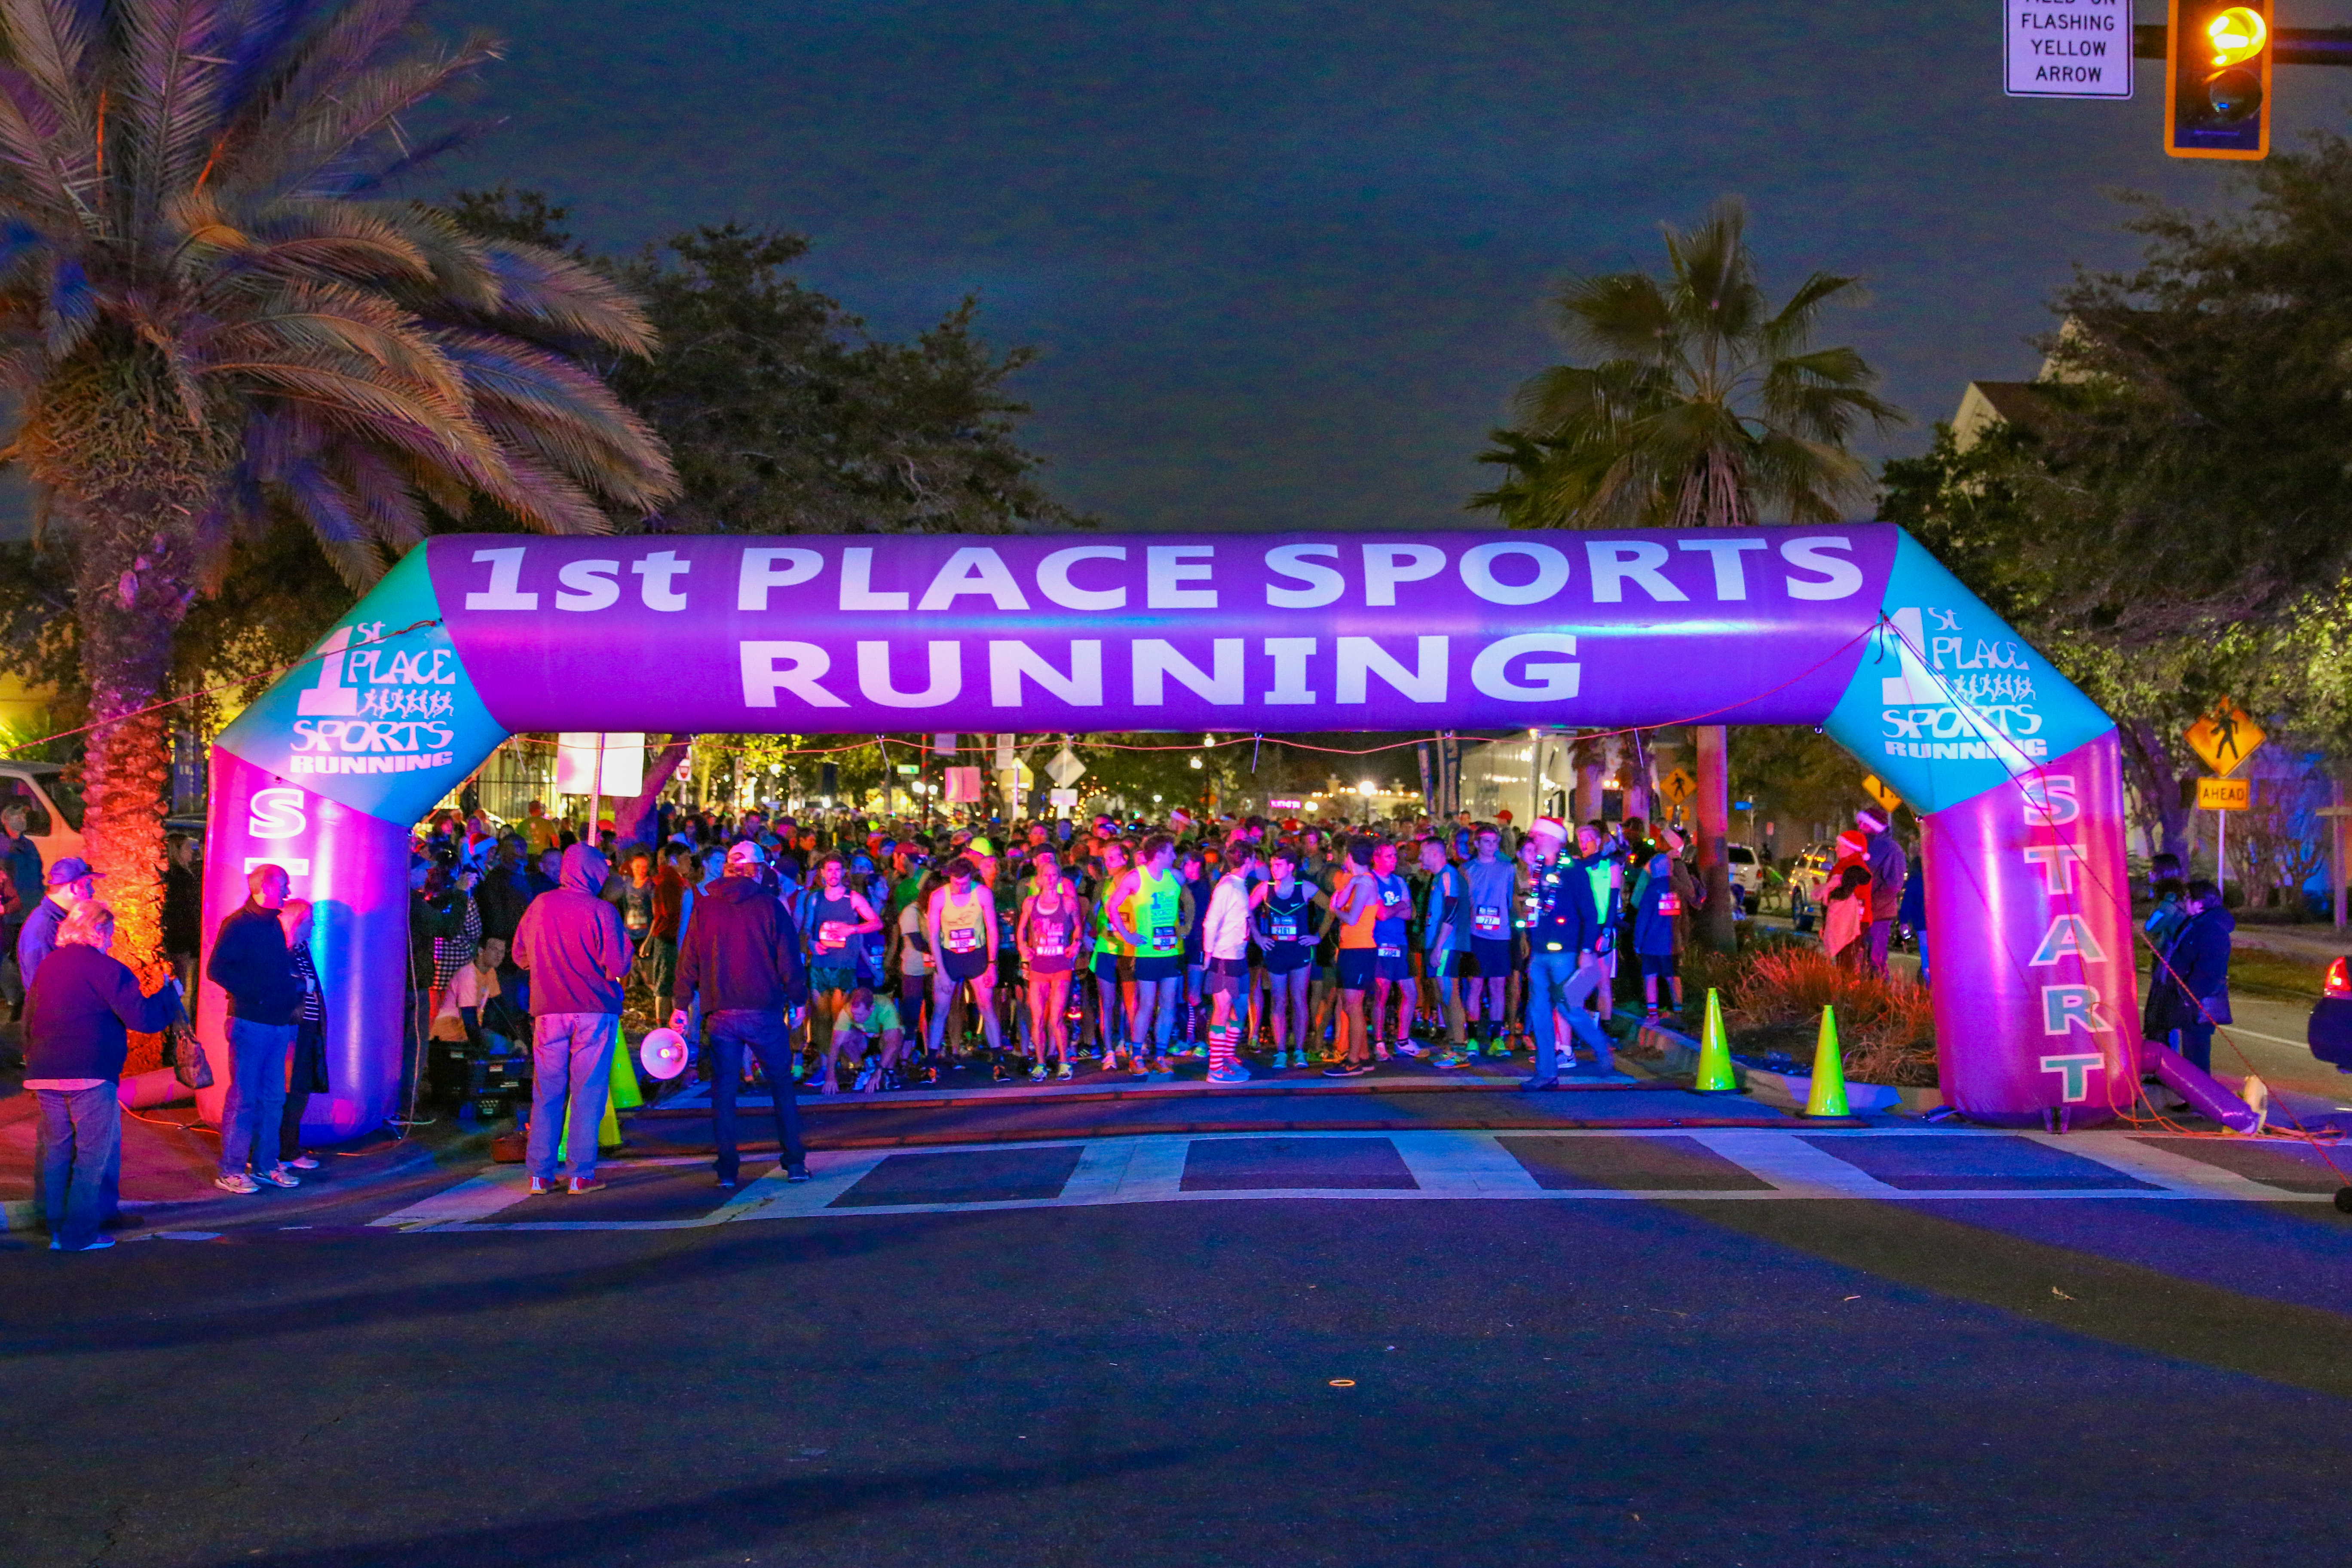 Festival Of Lights 1st Place Sports Grand Prix Starting 1